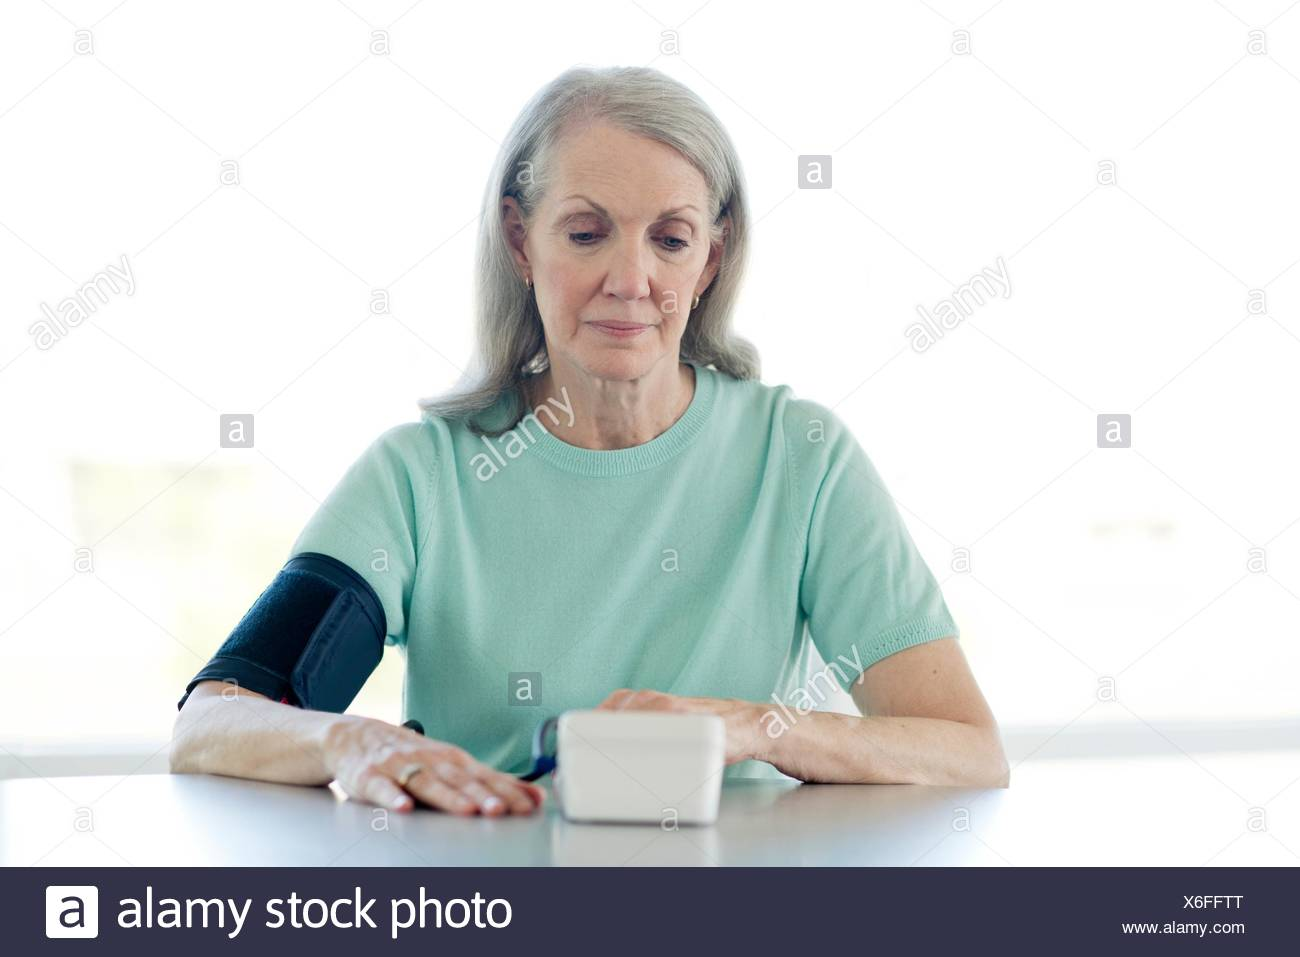 Senior woman taking her own blood pressure. - Stock Image